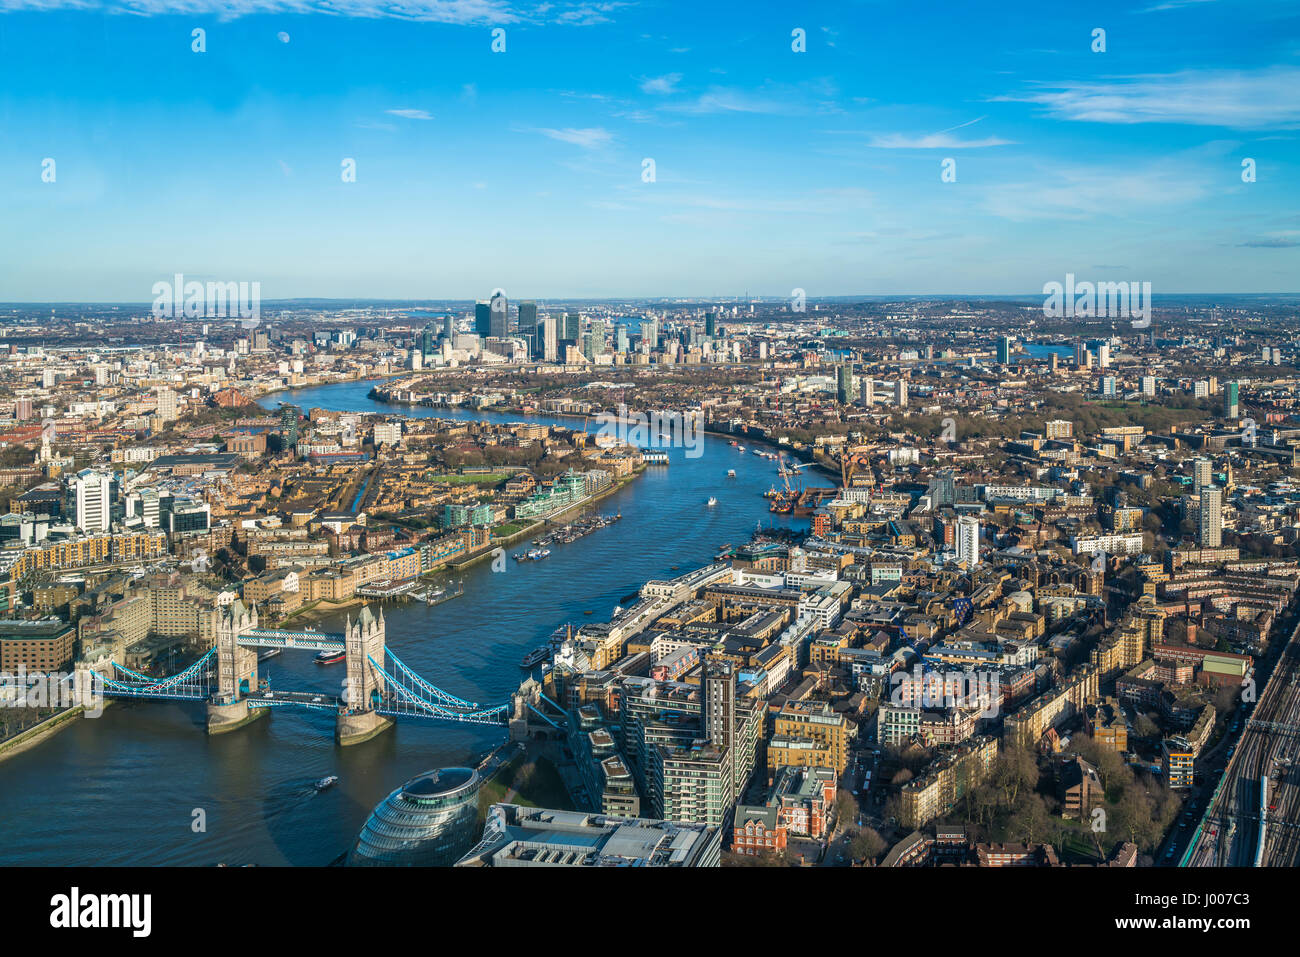 Uncategorized Panoramic Views Of London london uk march 09 2017 panoramic aerial view of with river thames tower bridge and modern skyscrapers which form ca